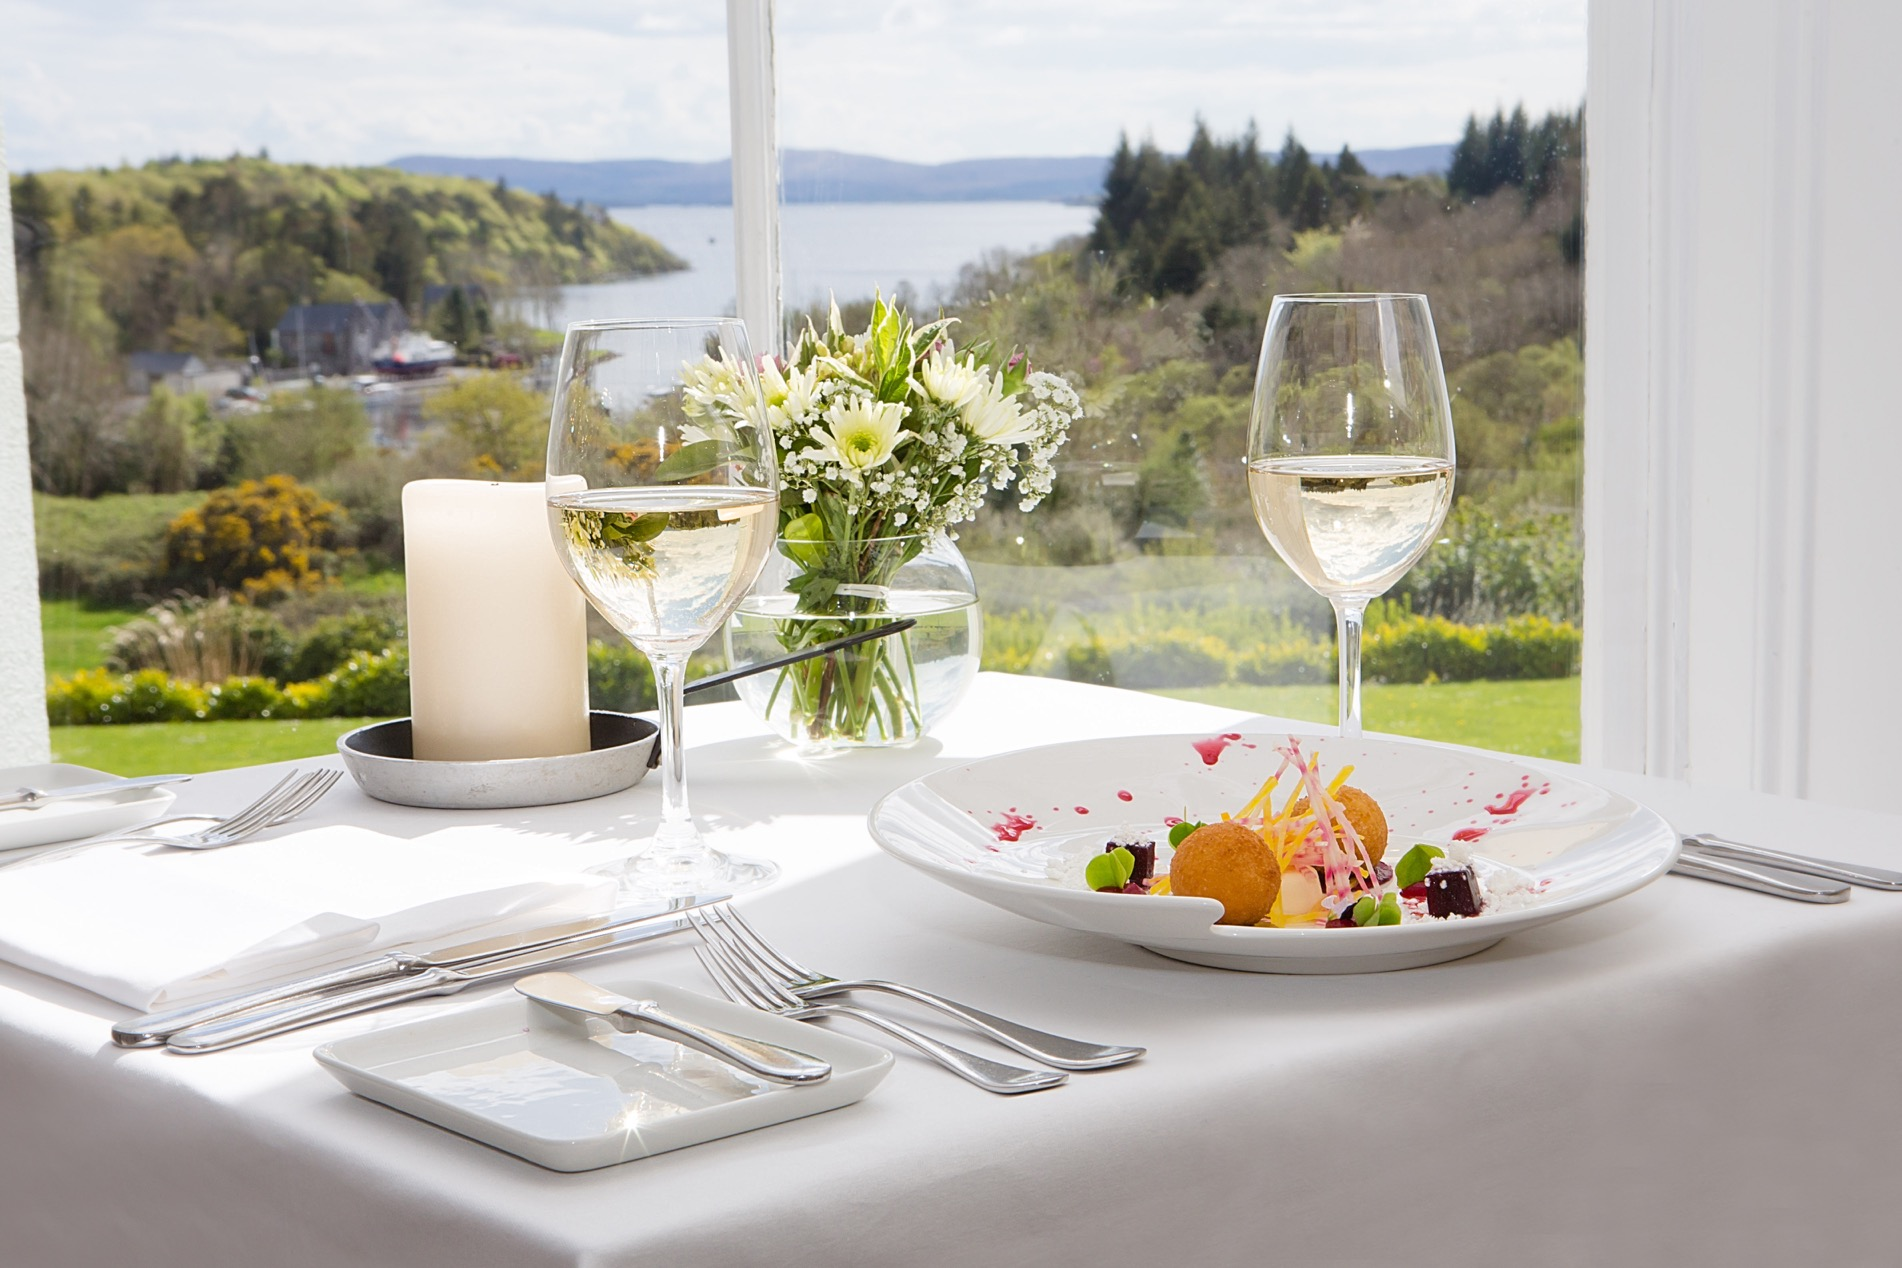 An interior shot of the lodge at ashford castle where if you book a wedding, you could win a luxury cruise to the value of e10000 with wine glasses and food on a white table with cutlery